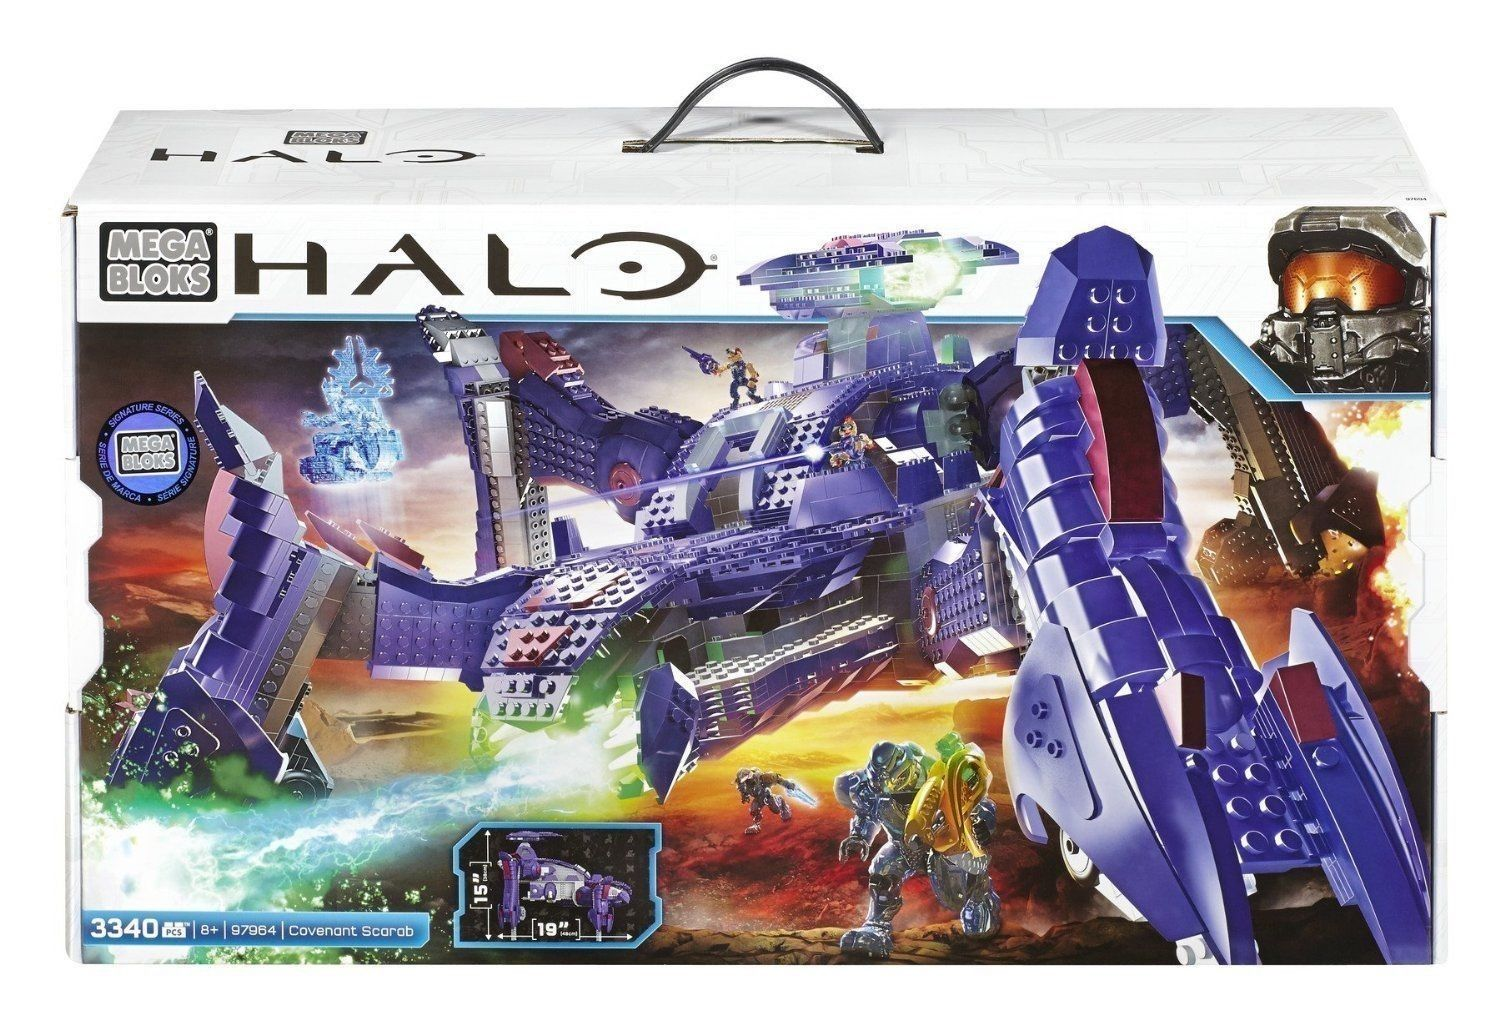 Covenant Scarab officially licensed Mega Bloks Halo product at B.A. Toys.